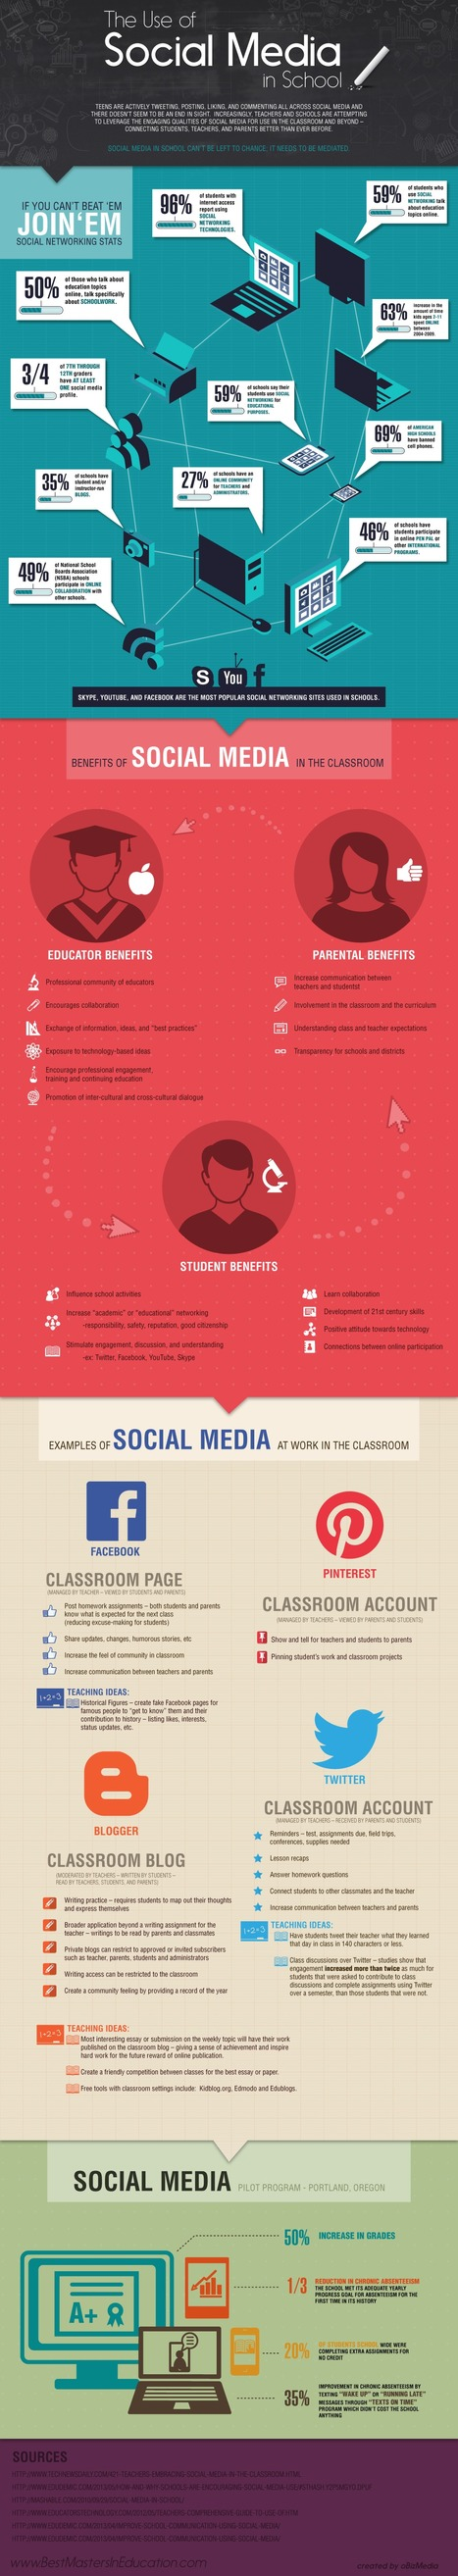 Social Media 101: Is There a Place For Social Media in Classrooms? [Infographic] | Wepyirang | Scoop.it